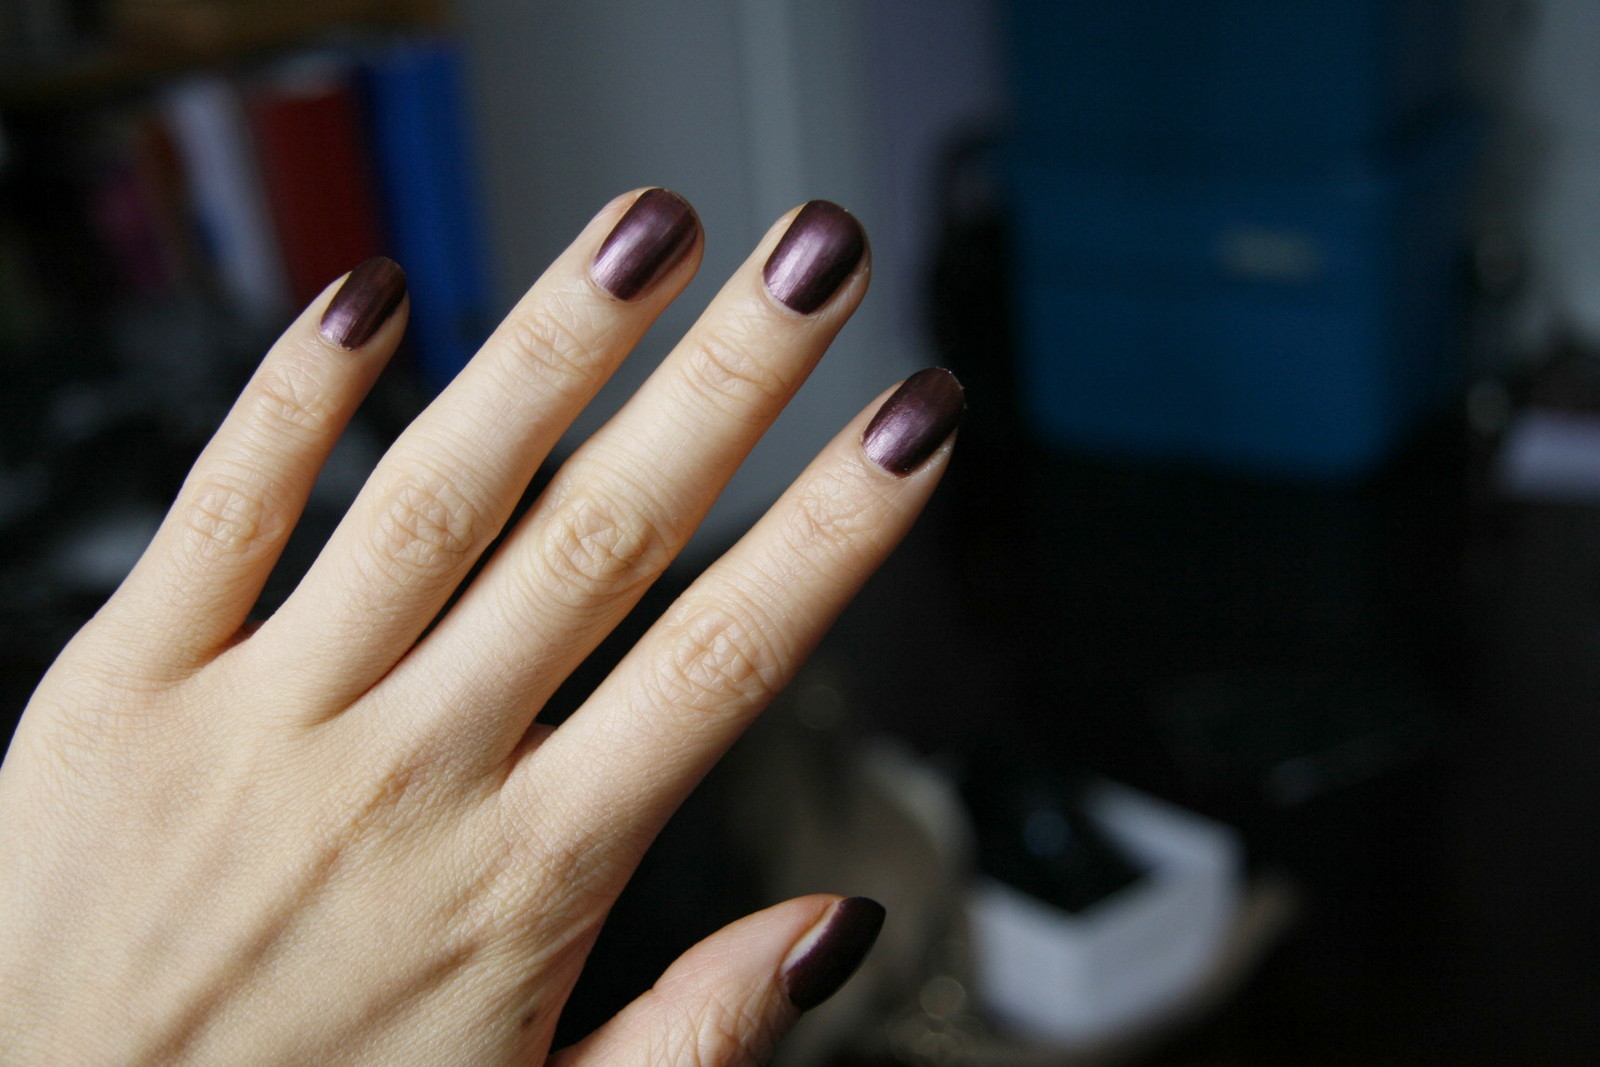 fun size beauty: Suncoat Peelable Nail Polish in Mulberry